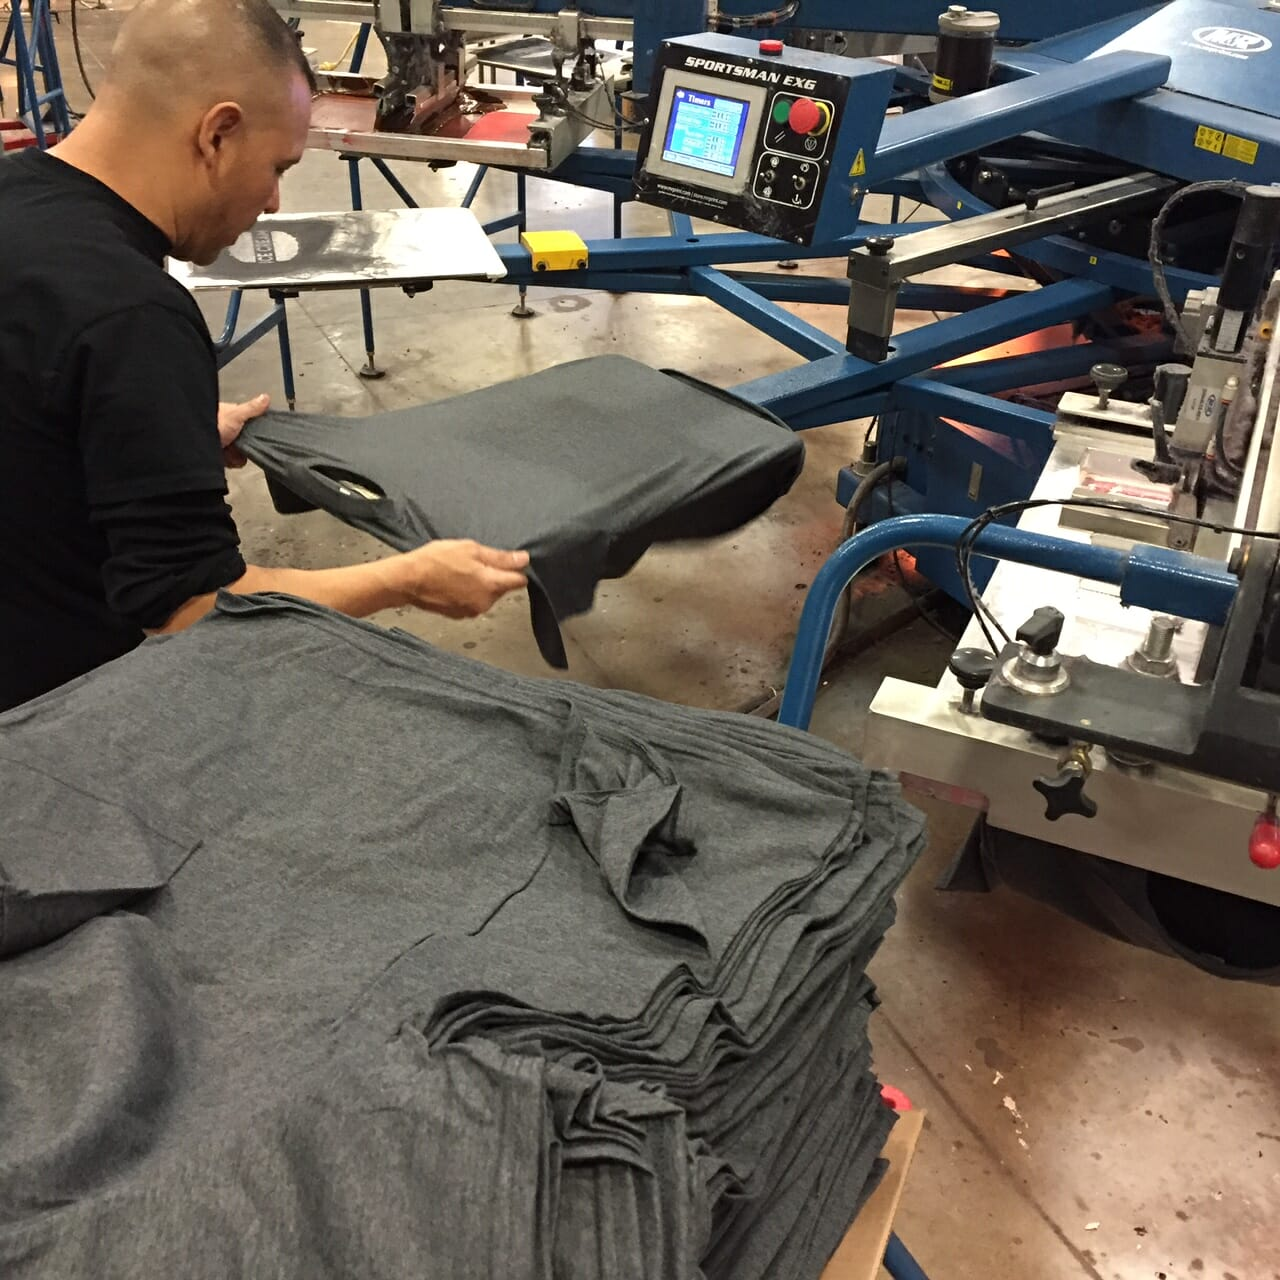 Screenprinting Grey Shirts on an Auto - Marshall Atkinson